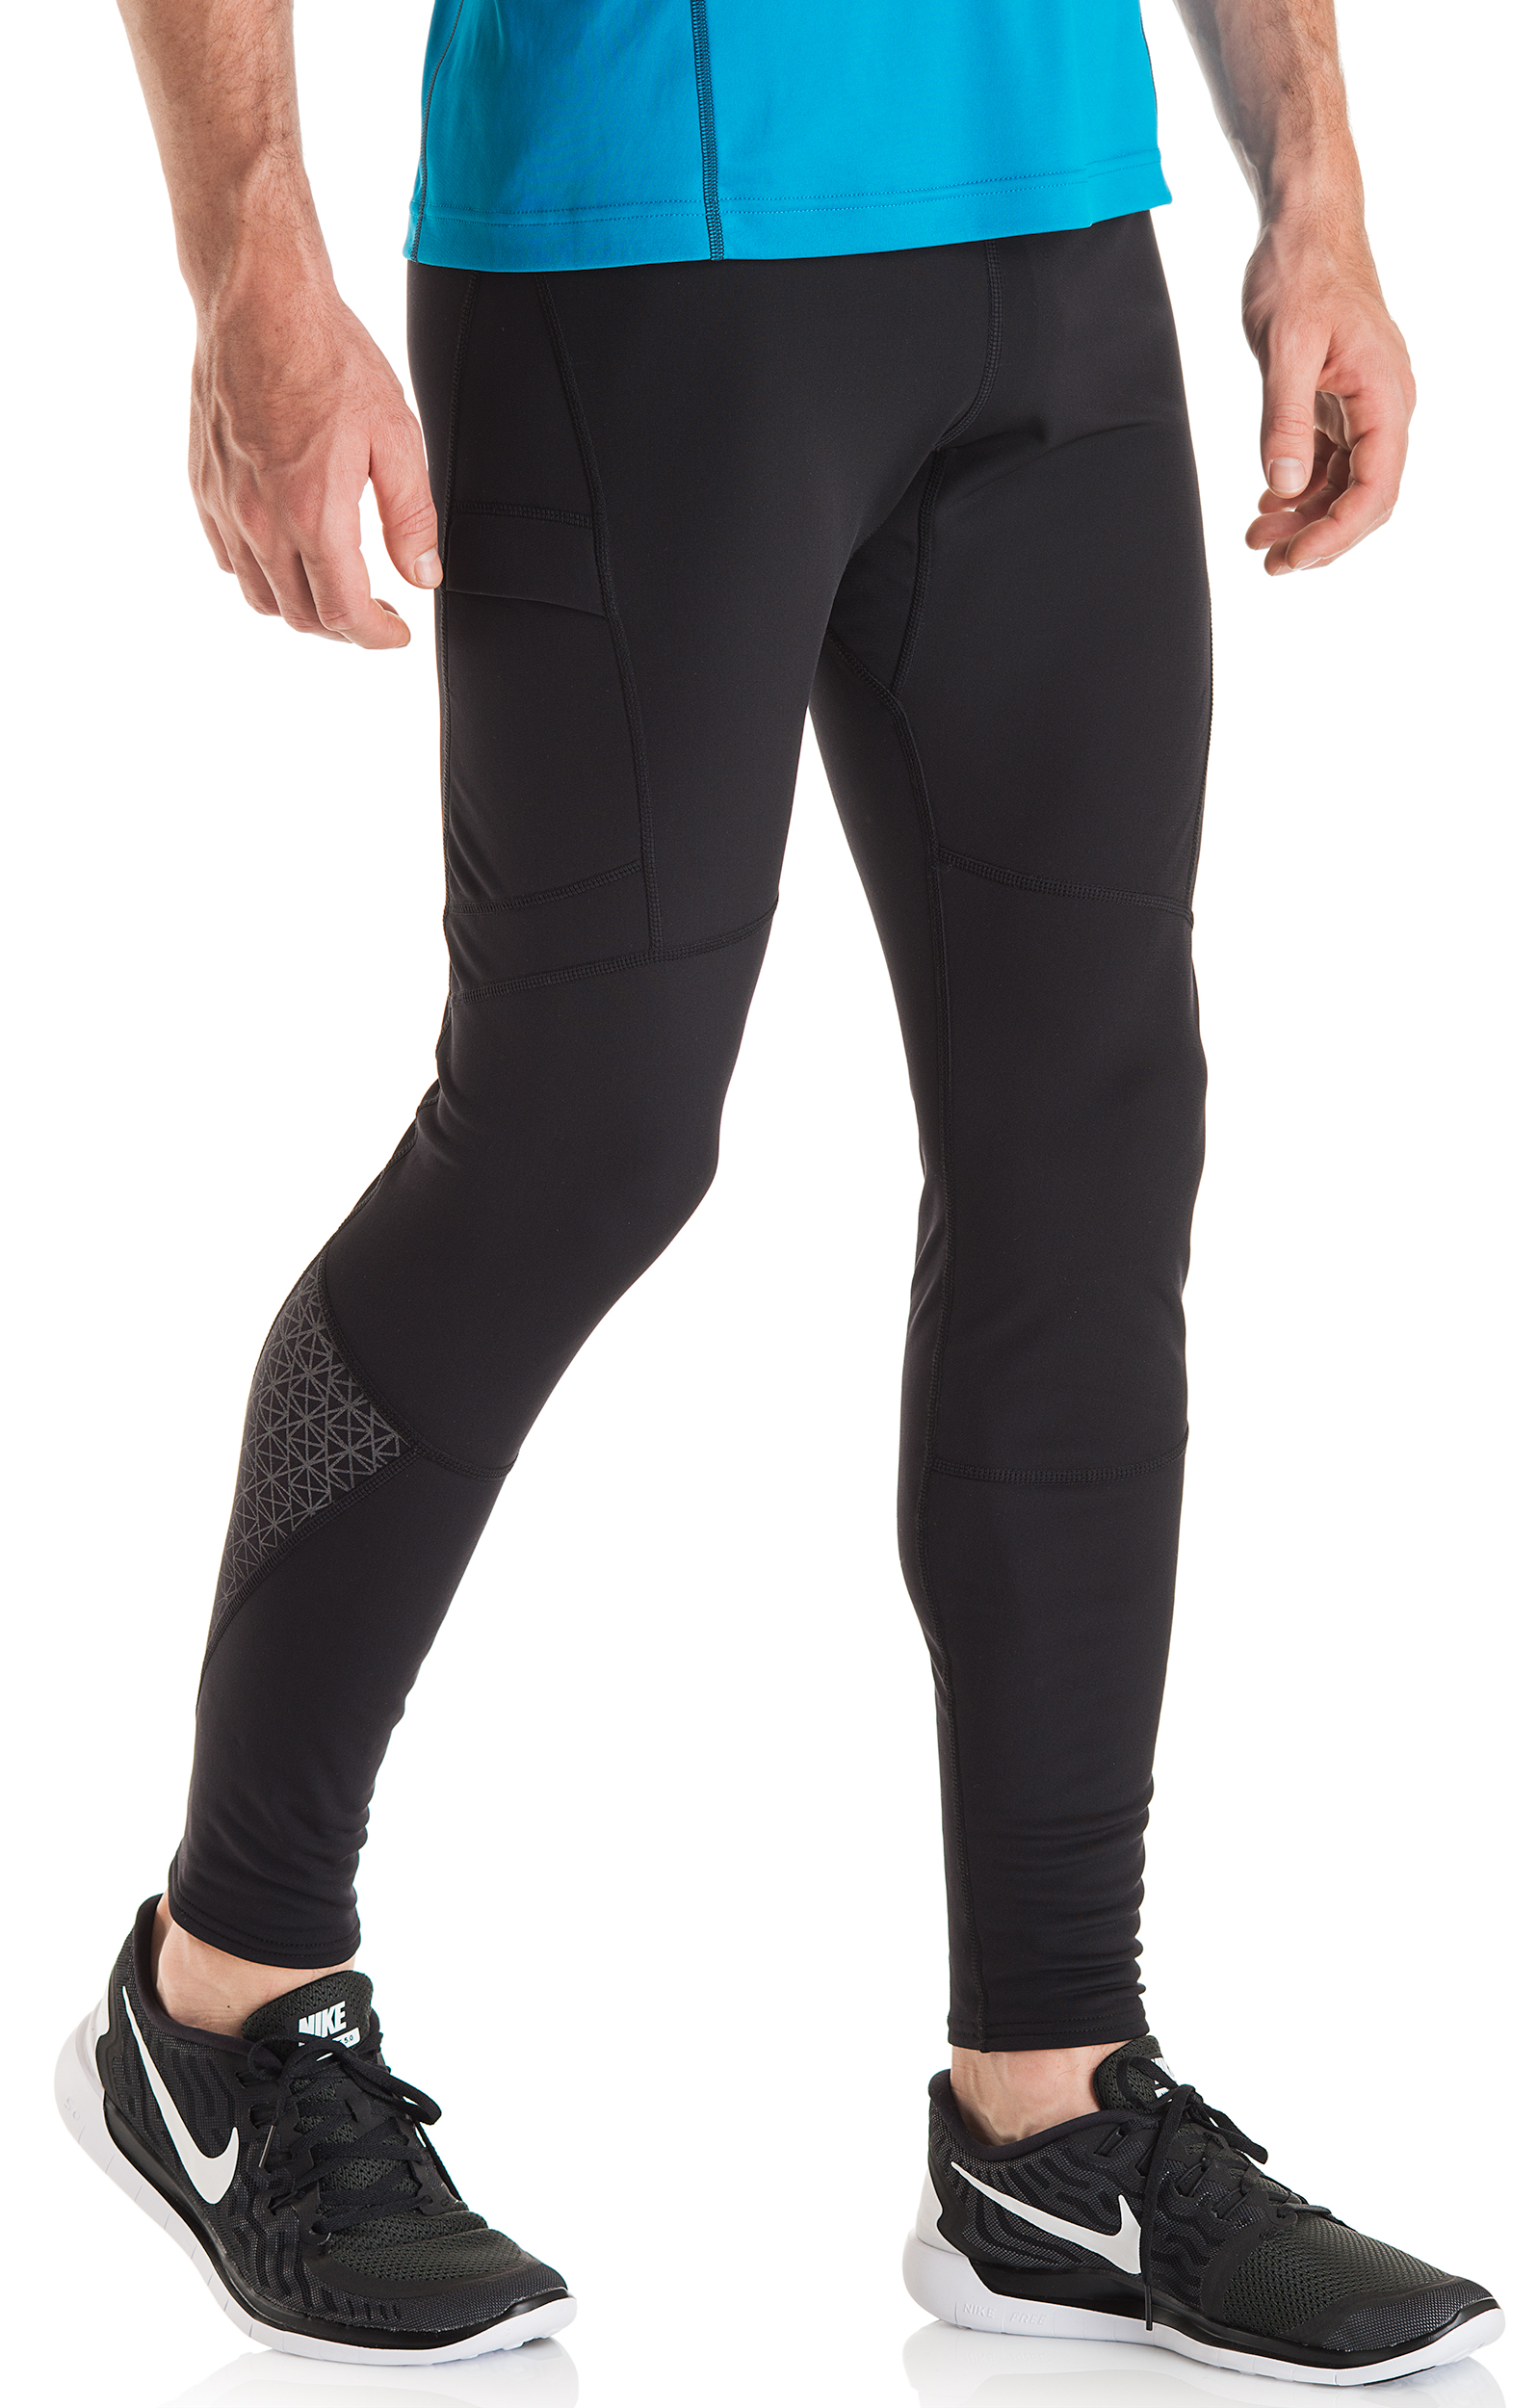 d583919583a0f MEC Mercury 2 Thermal Tights - Men's